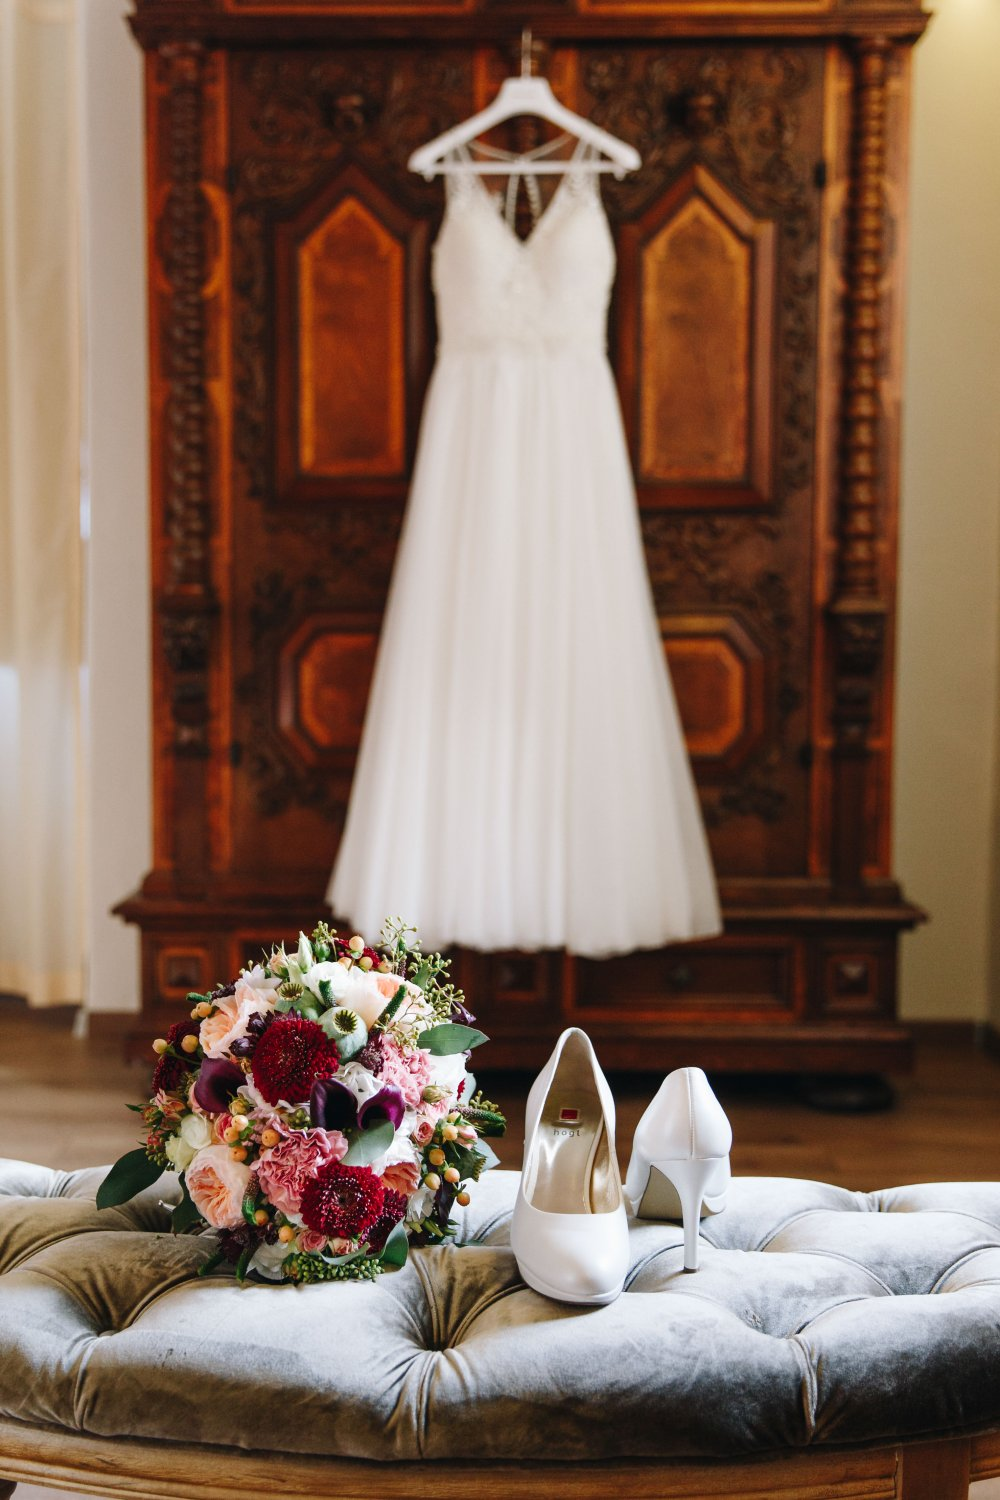 Salzkammergut Wedding Schlosshotel Mondsee wedding dress